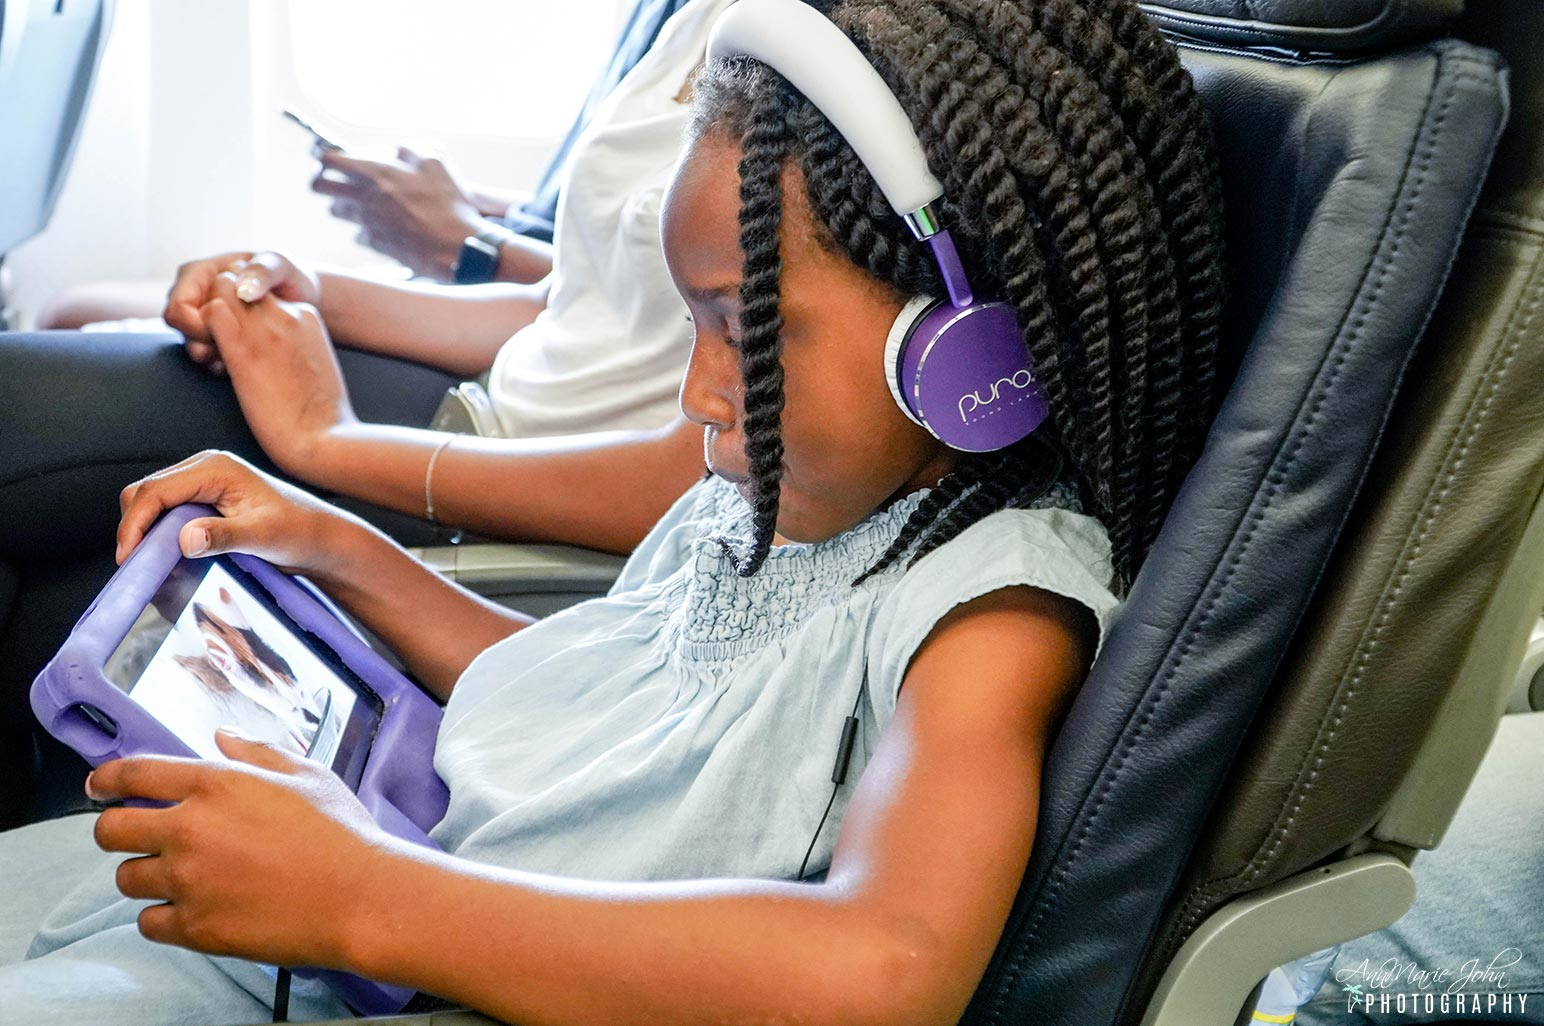 Child Wearing Headphones Showing Proper Travel Etiquette